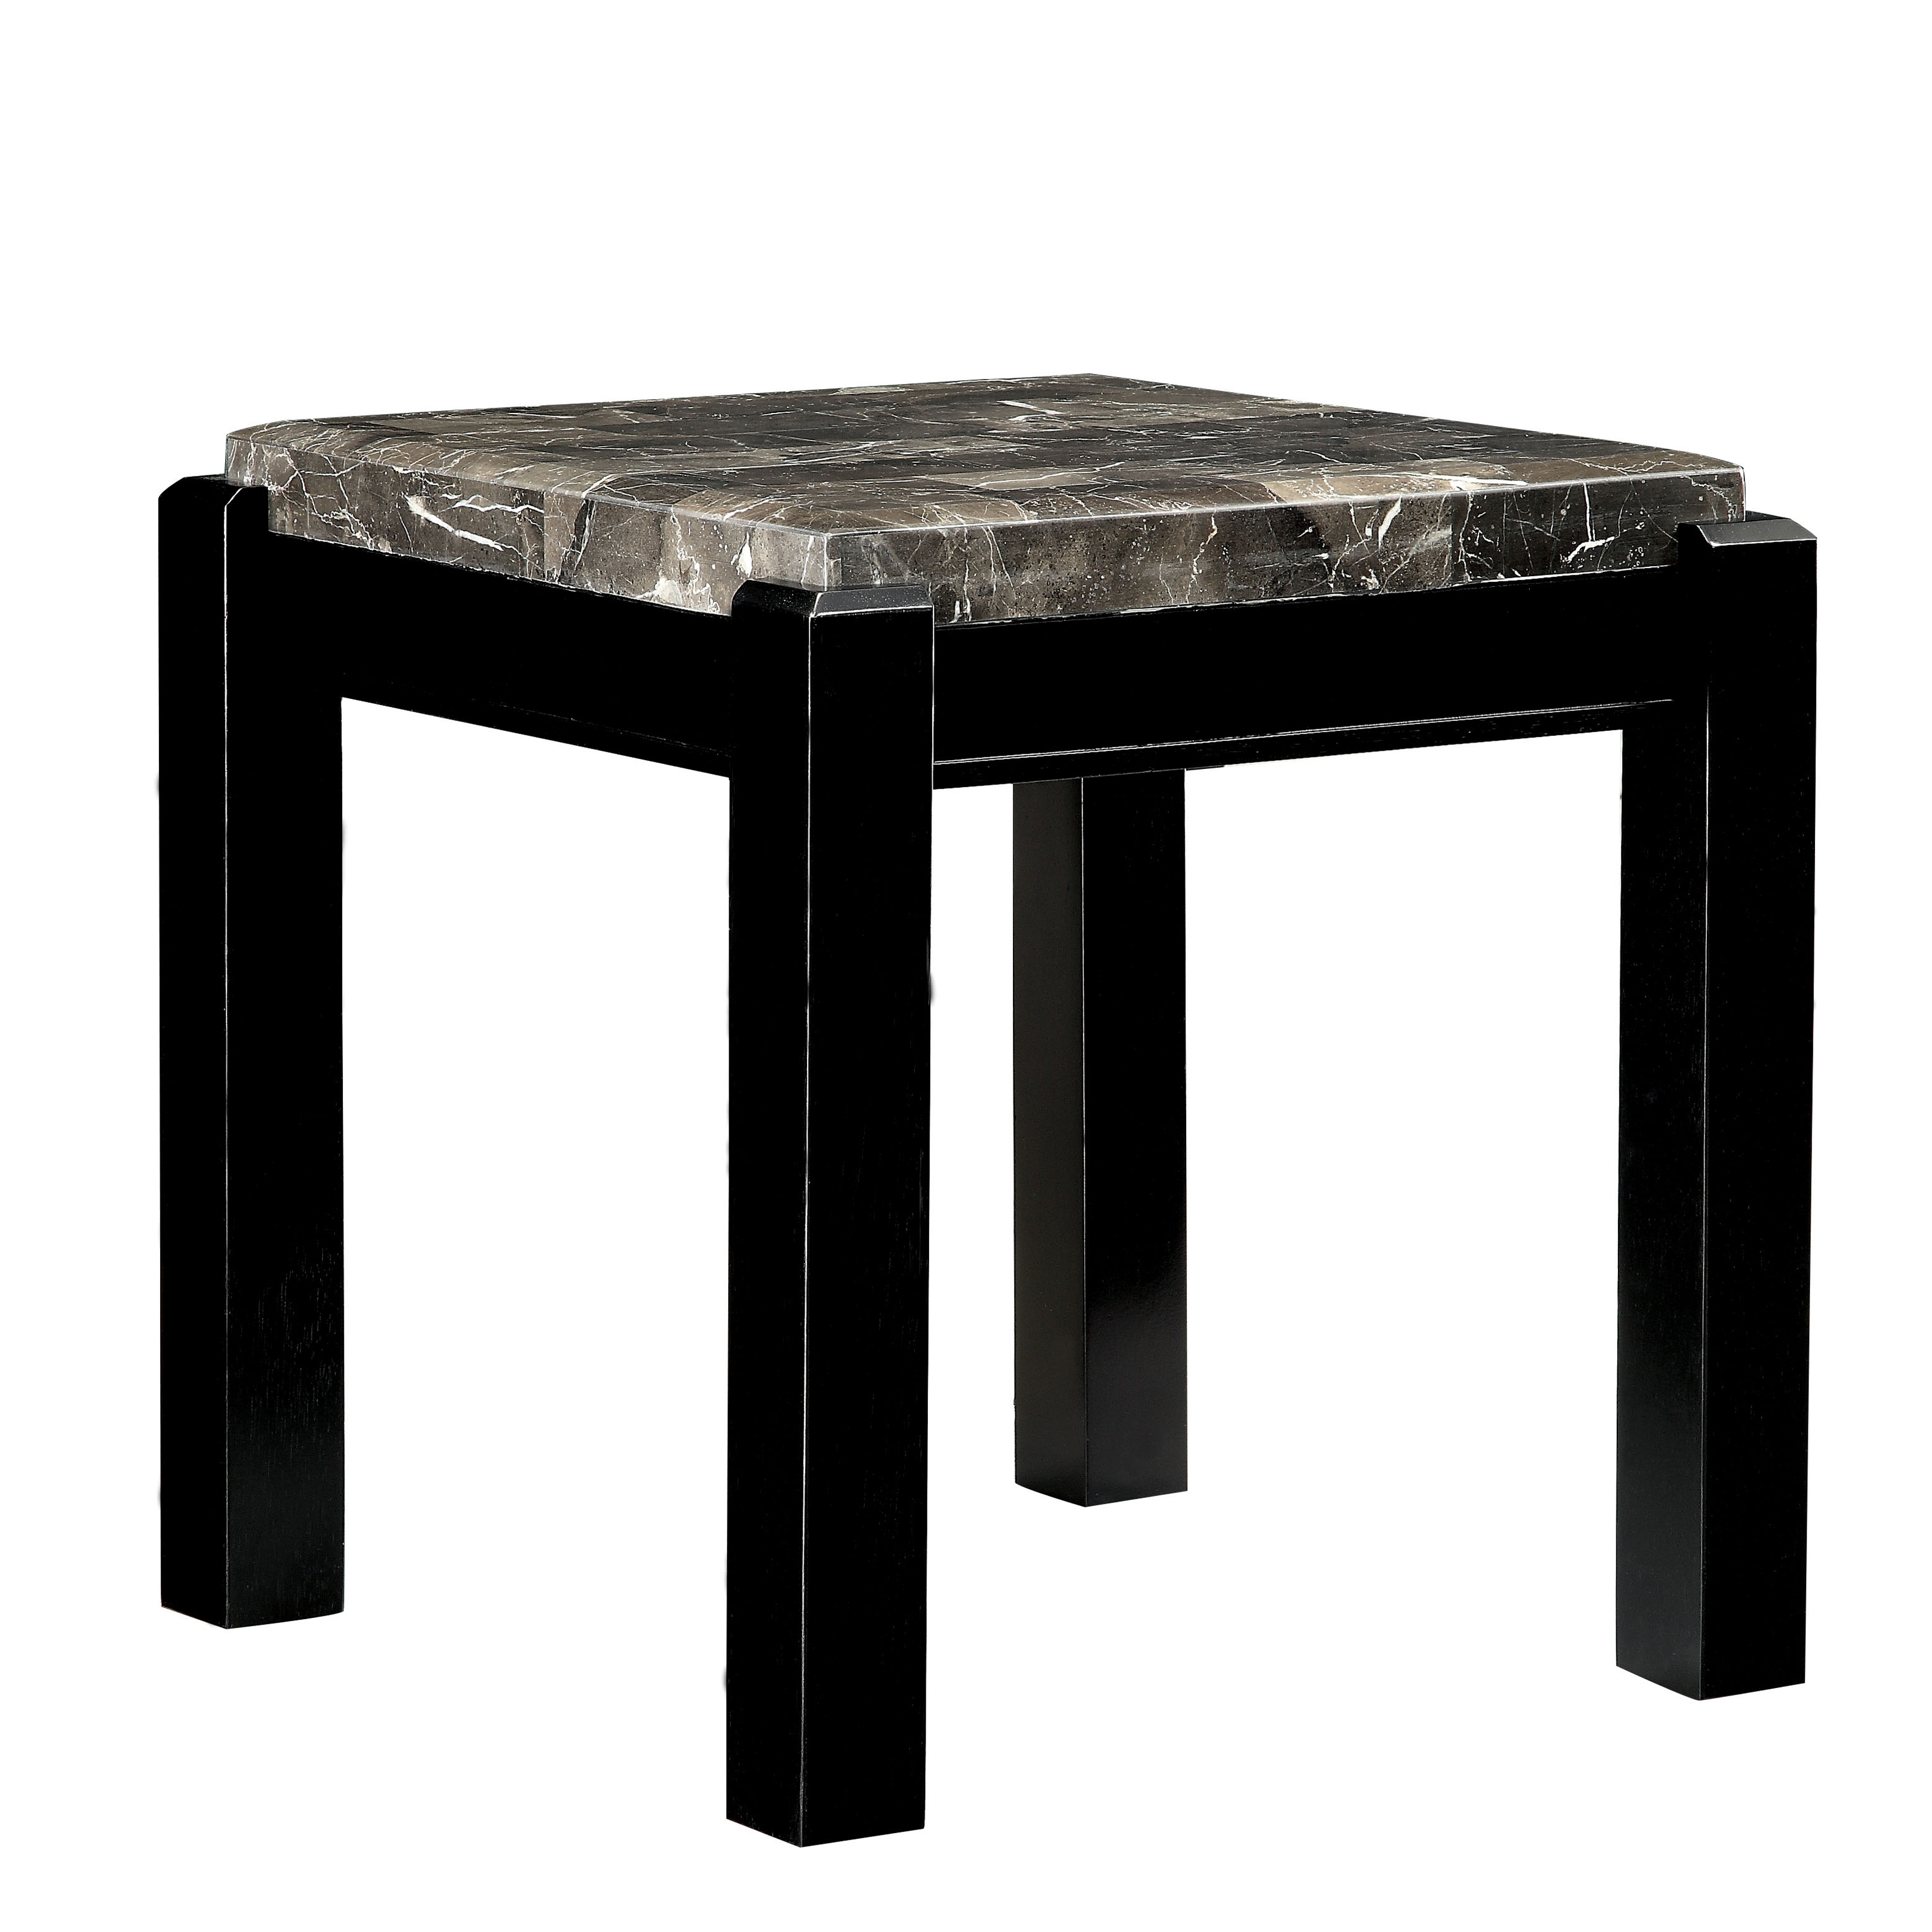 Adeline Faux Marble Coffee Table